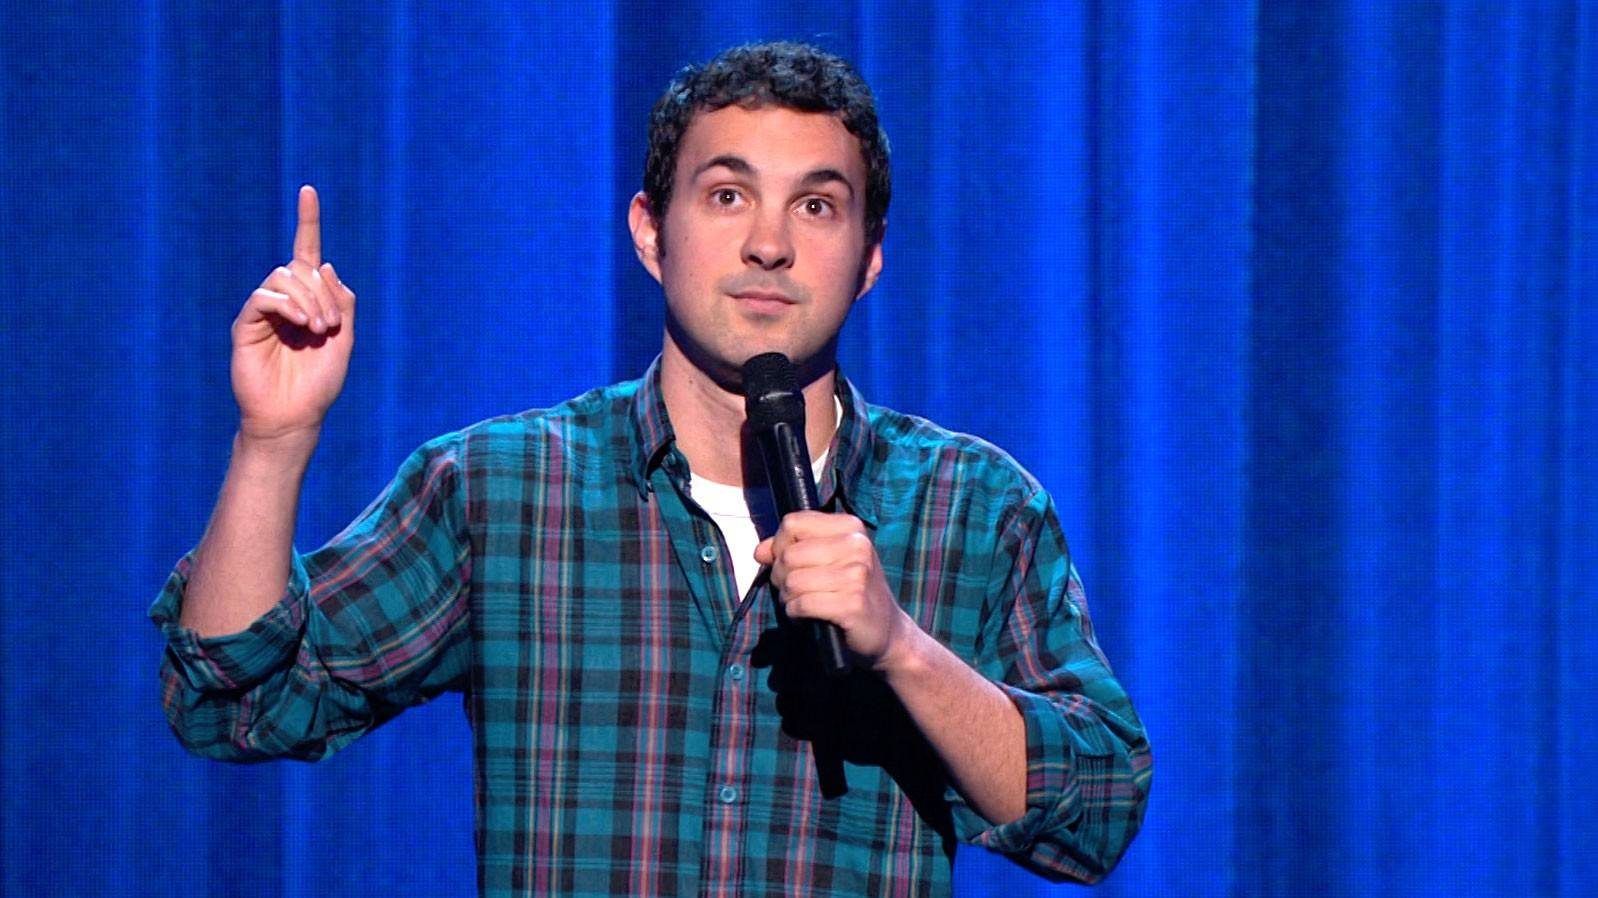 Weekend picks: Mark Normand brings comedy to Zanies